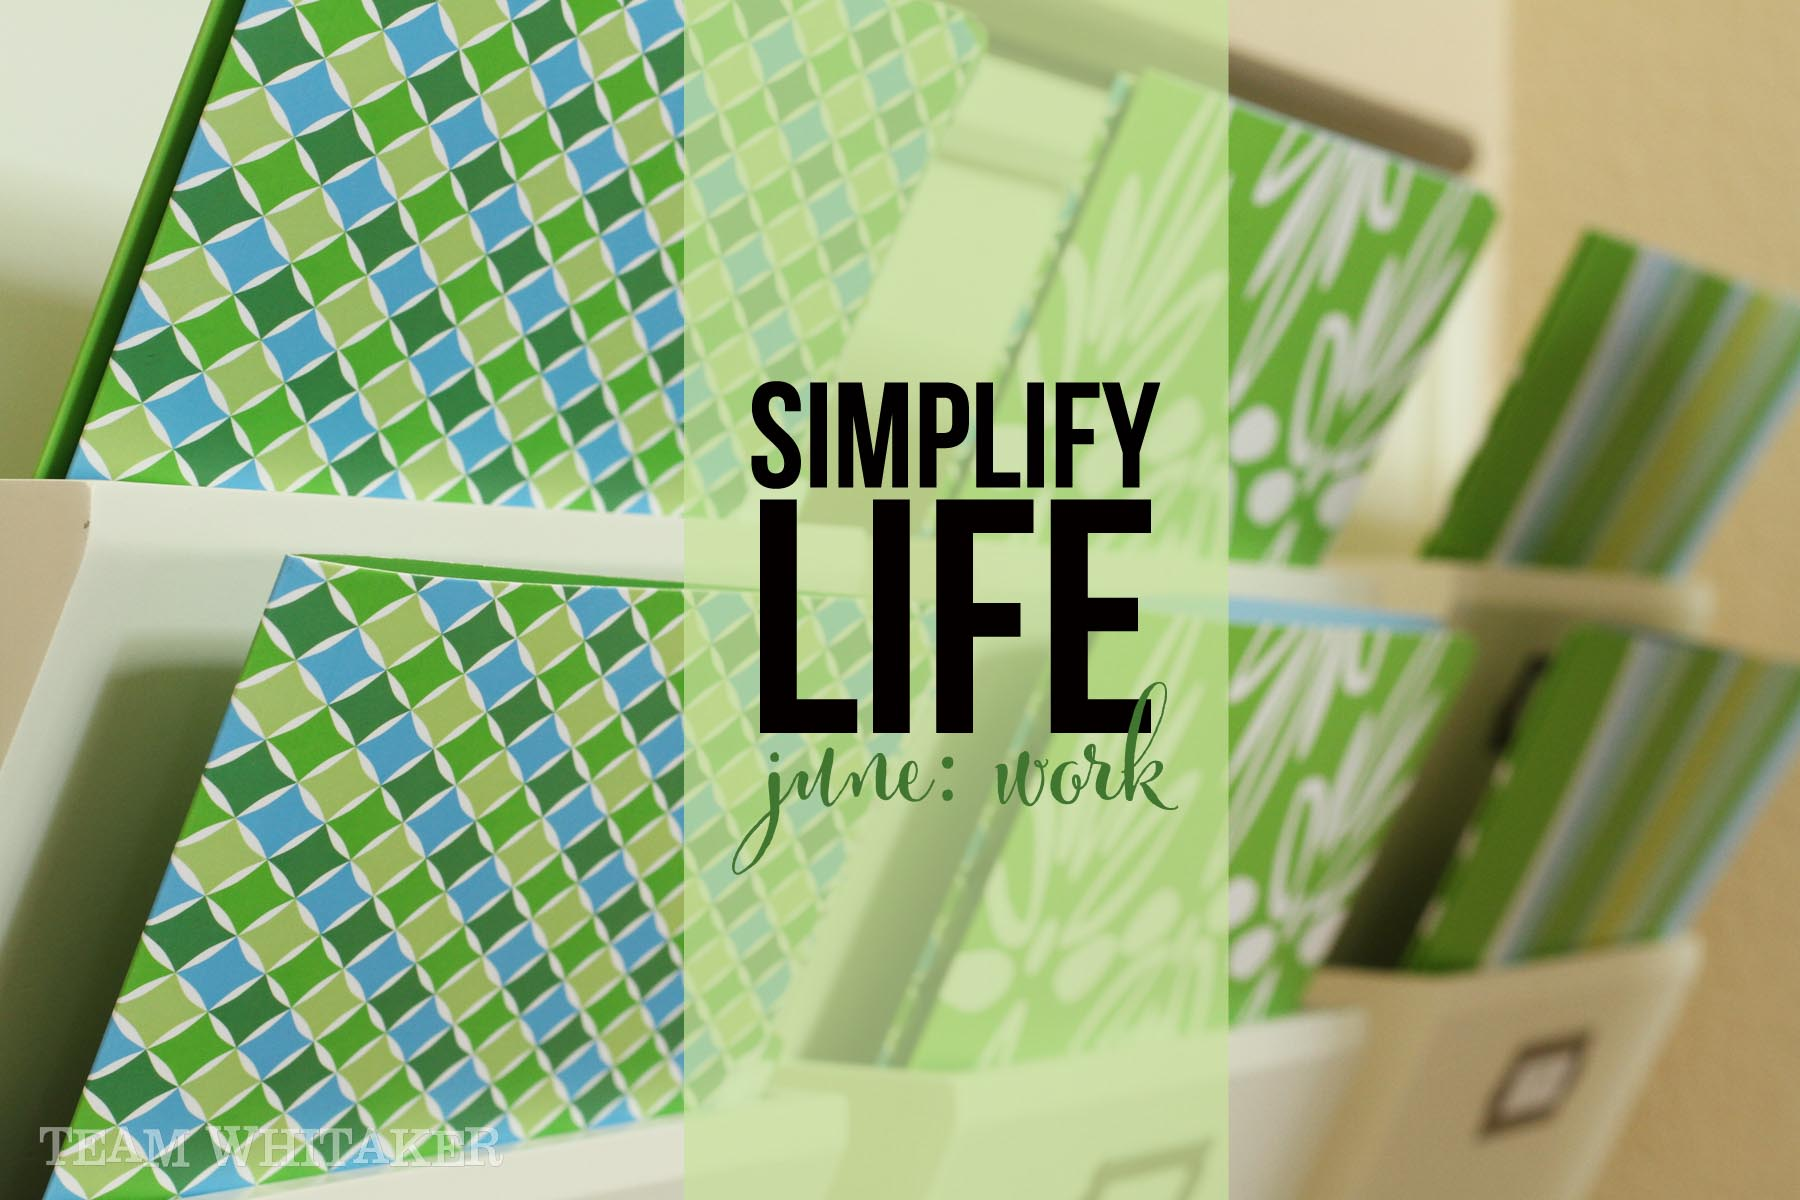 It's time to simplify life, in every nook and cranny. Up this month? Simplifying work routines.